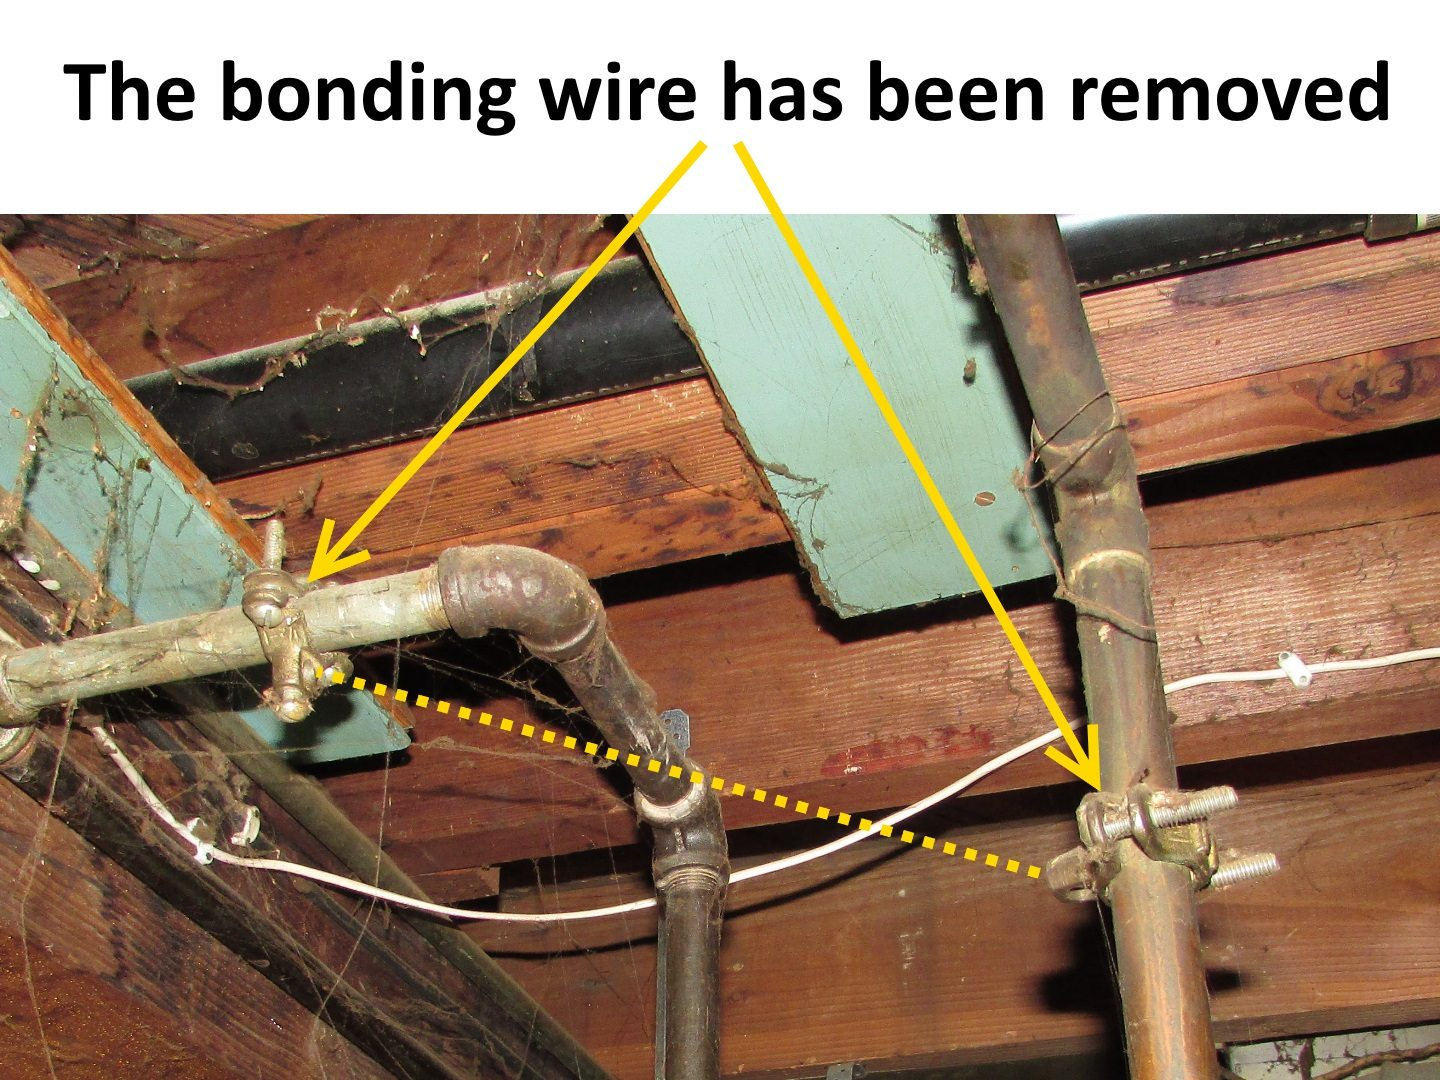 Bonding Gas Piping Structure Tech Home Inspections Metal Buildings Wired So You Get What We Had Here Last Week I Have Pictured Below There Used To Be A Wire Connected Those Clamps But Someone Removed It